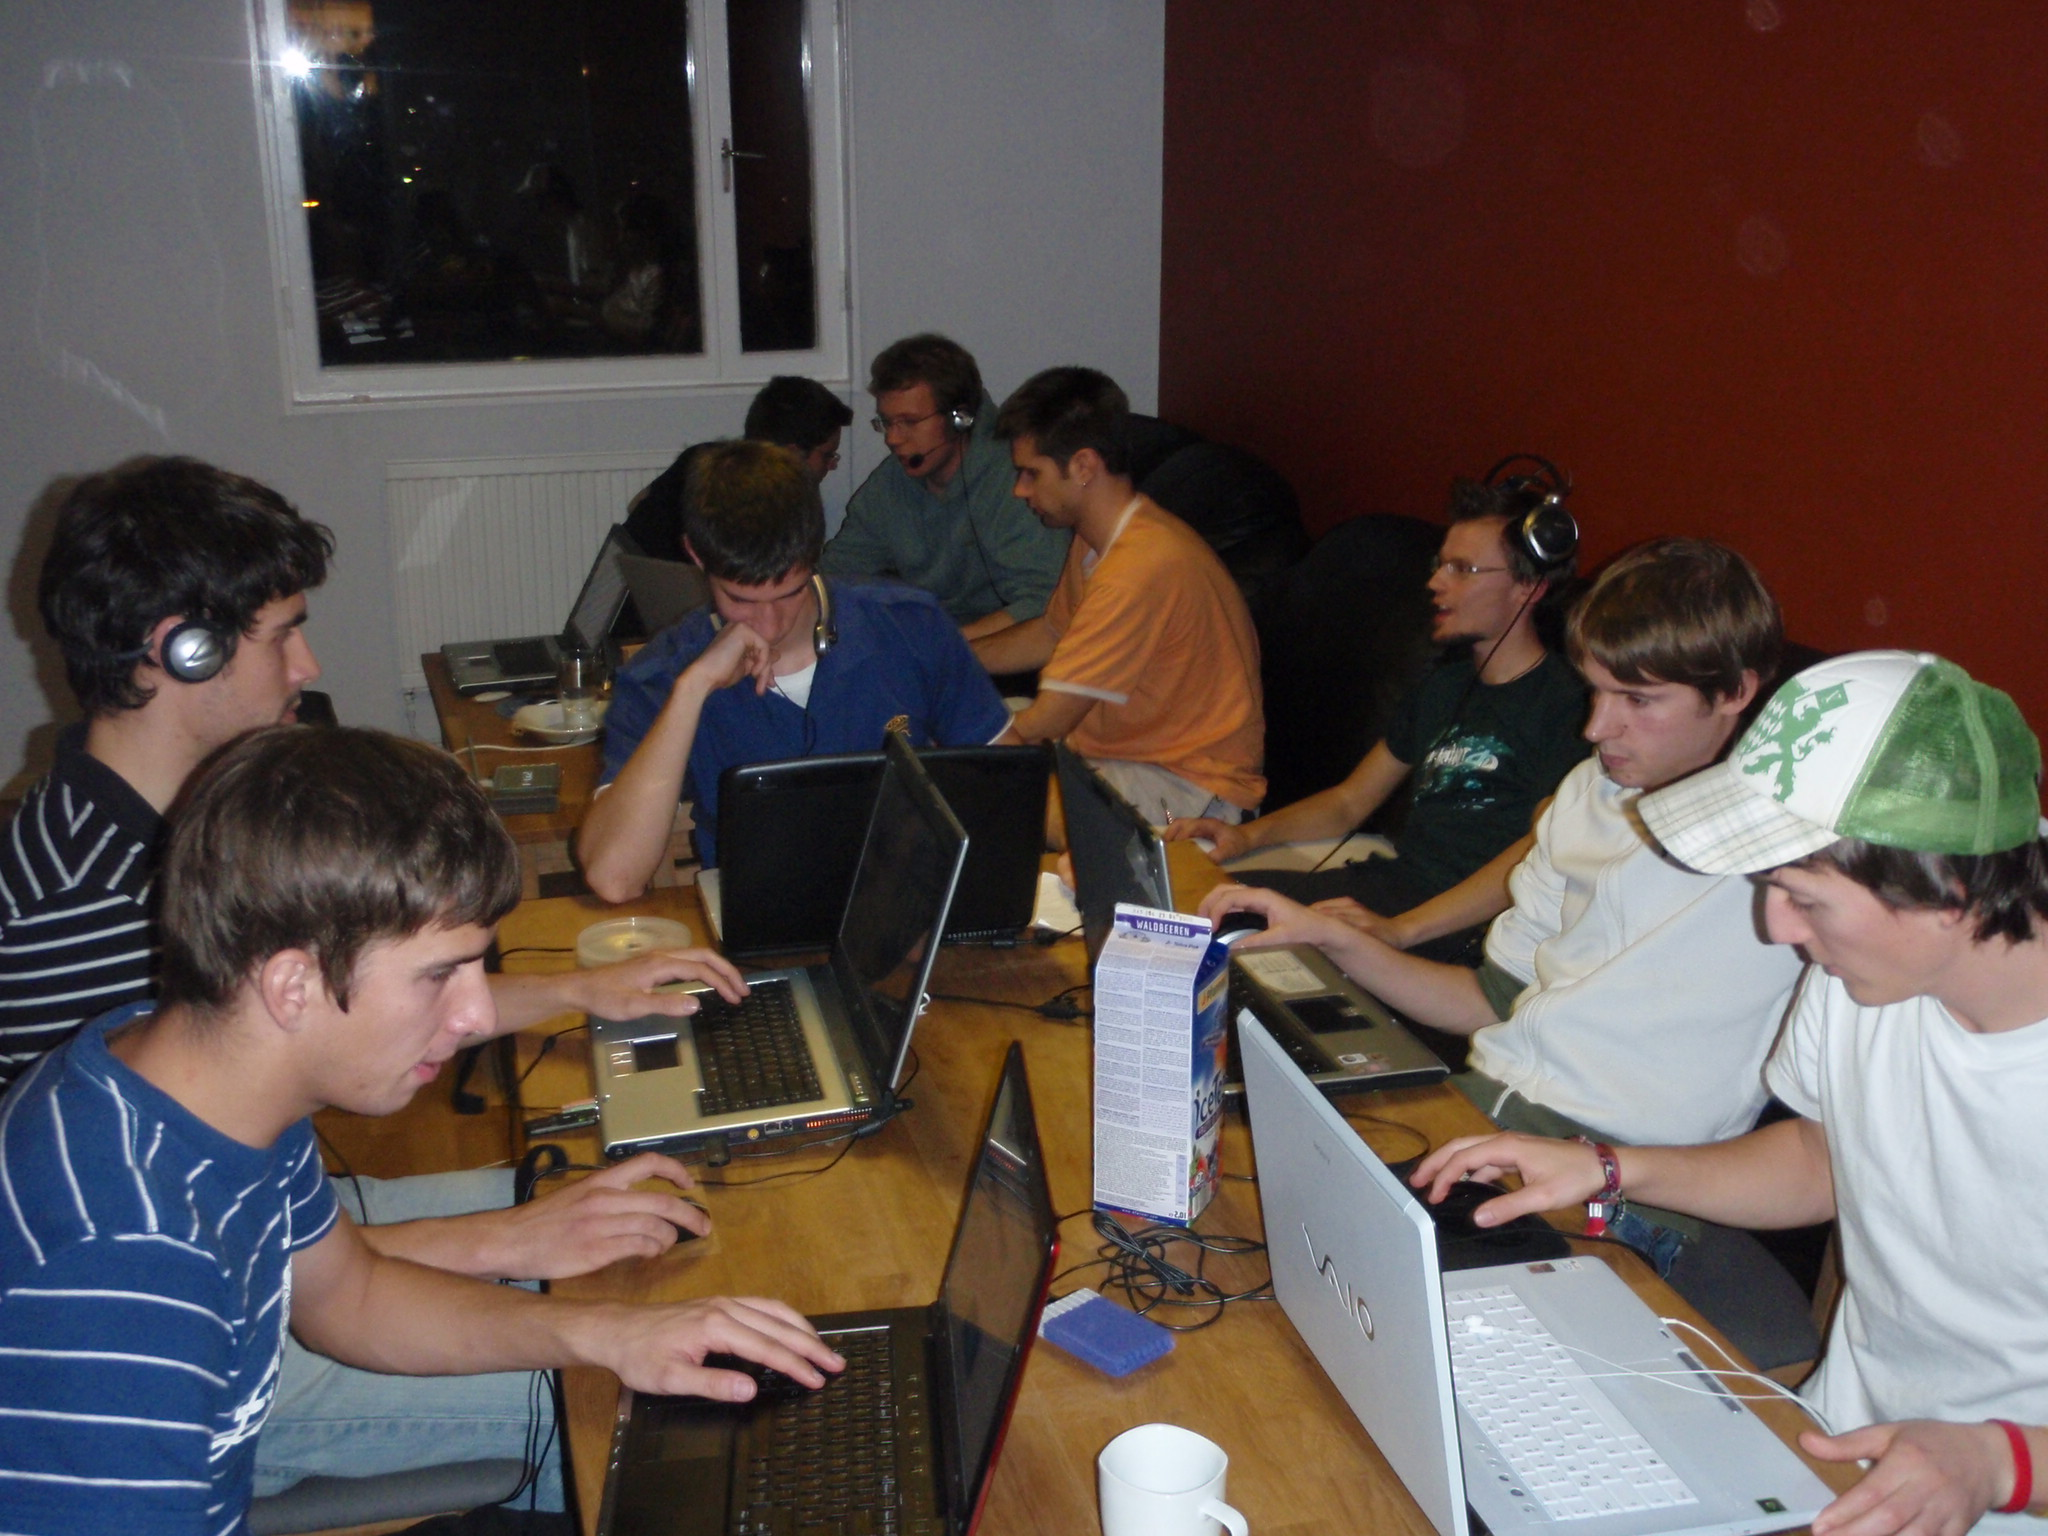 How to Host a LAN Party on an Extreme Budget